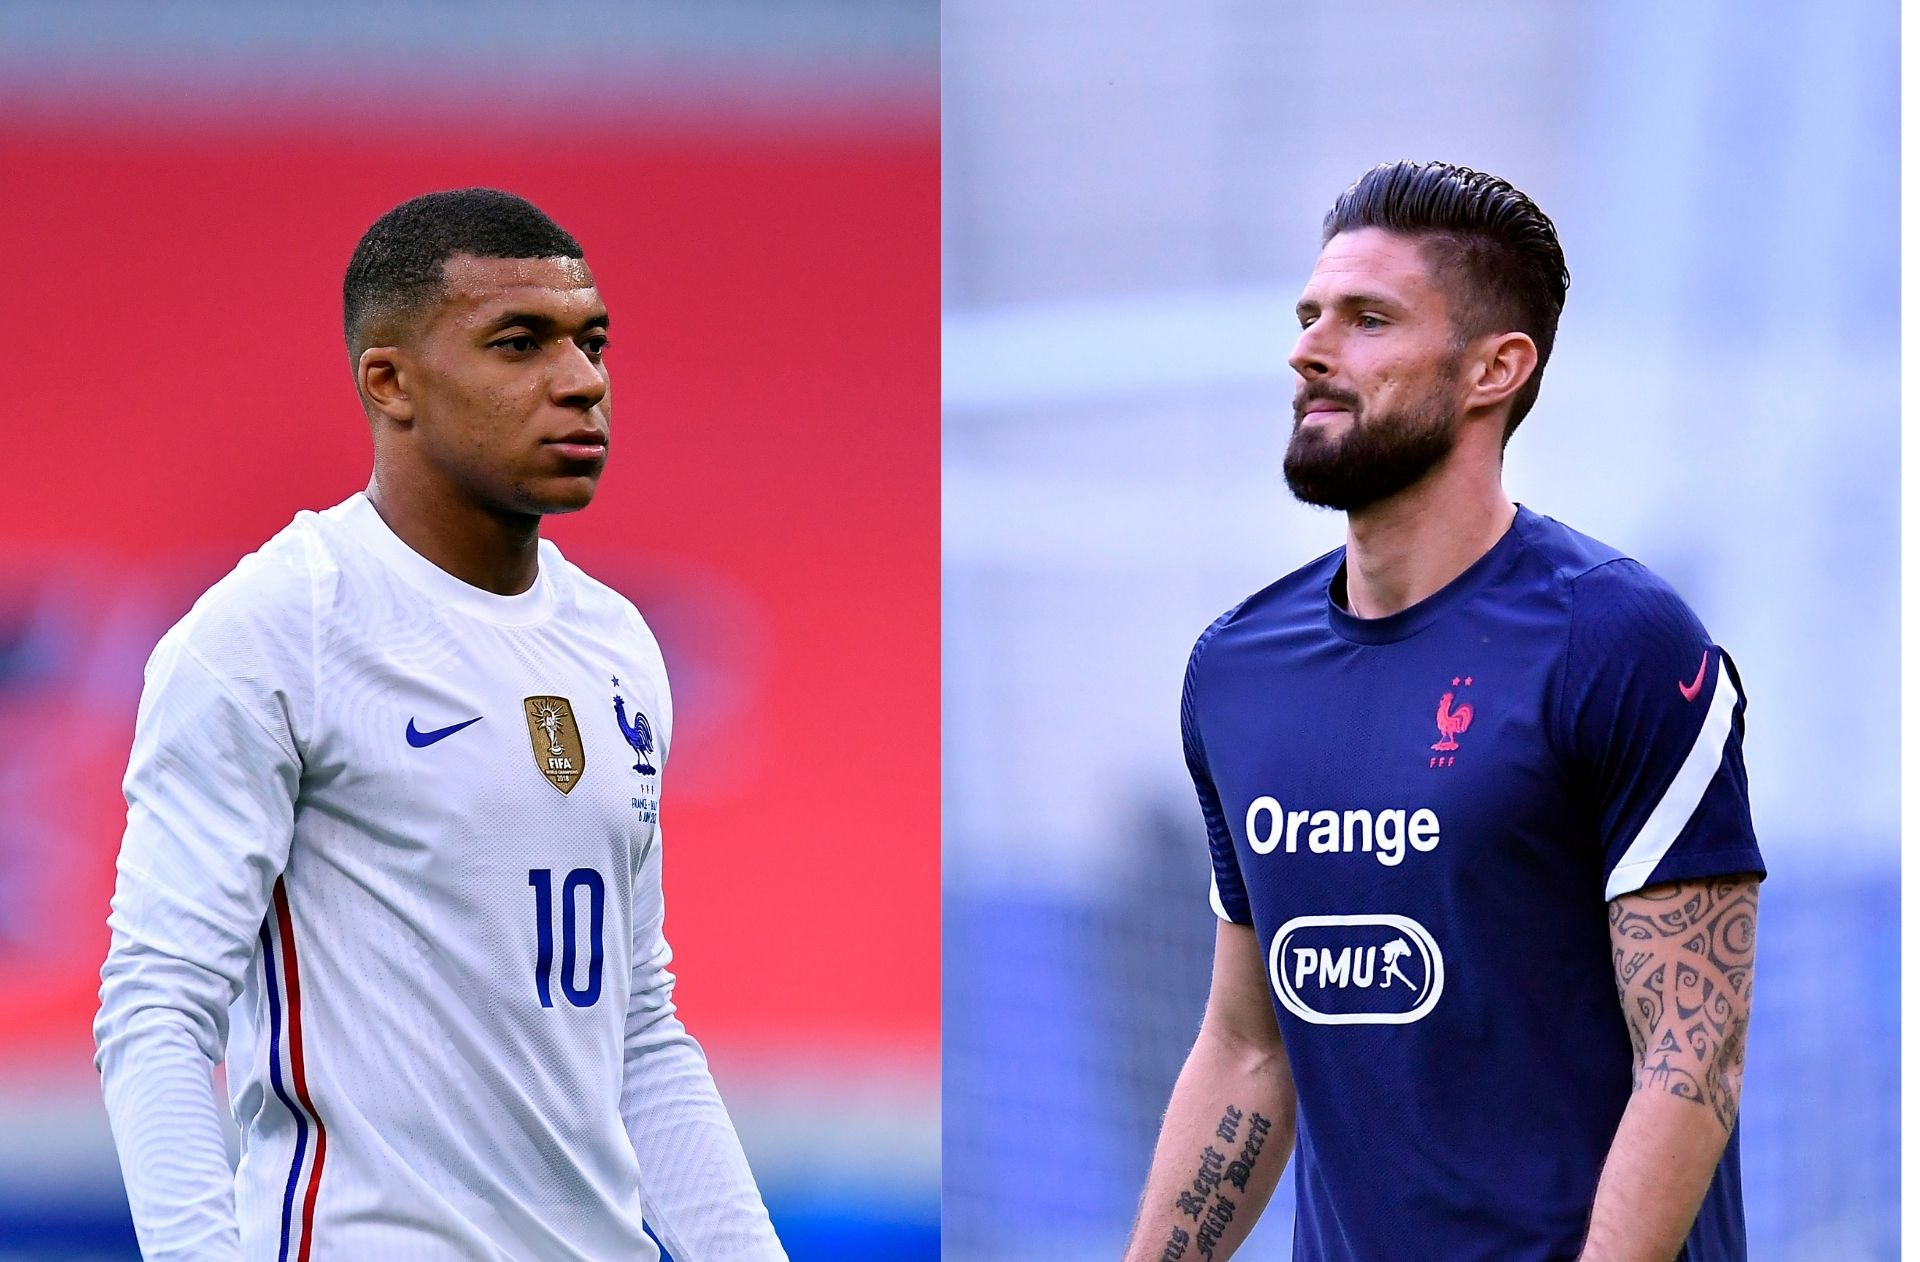 Pogba weighs in on rumored fall-out between Mbappe and Giroud